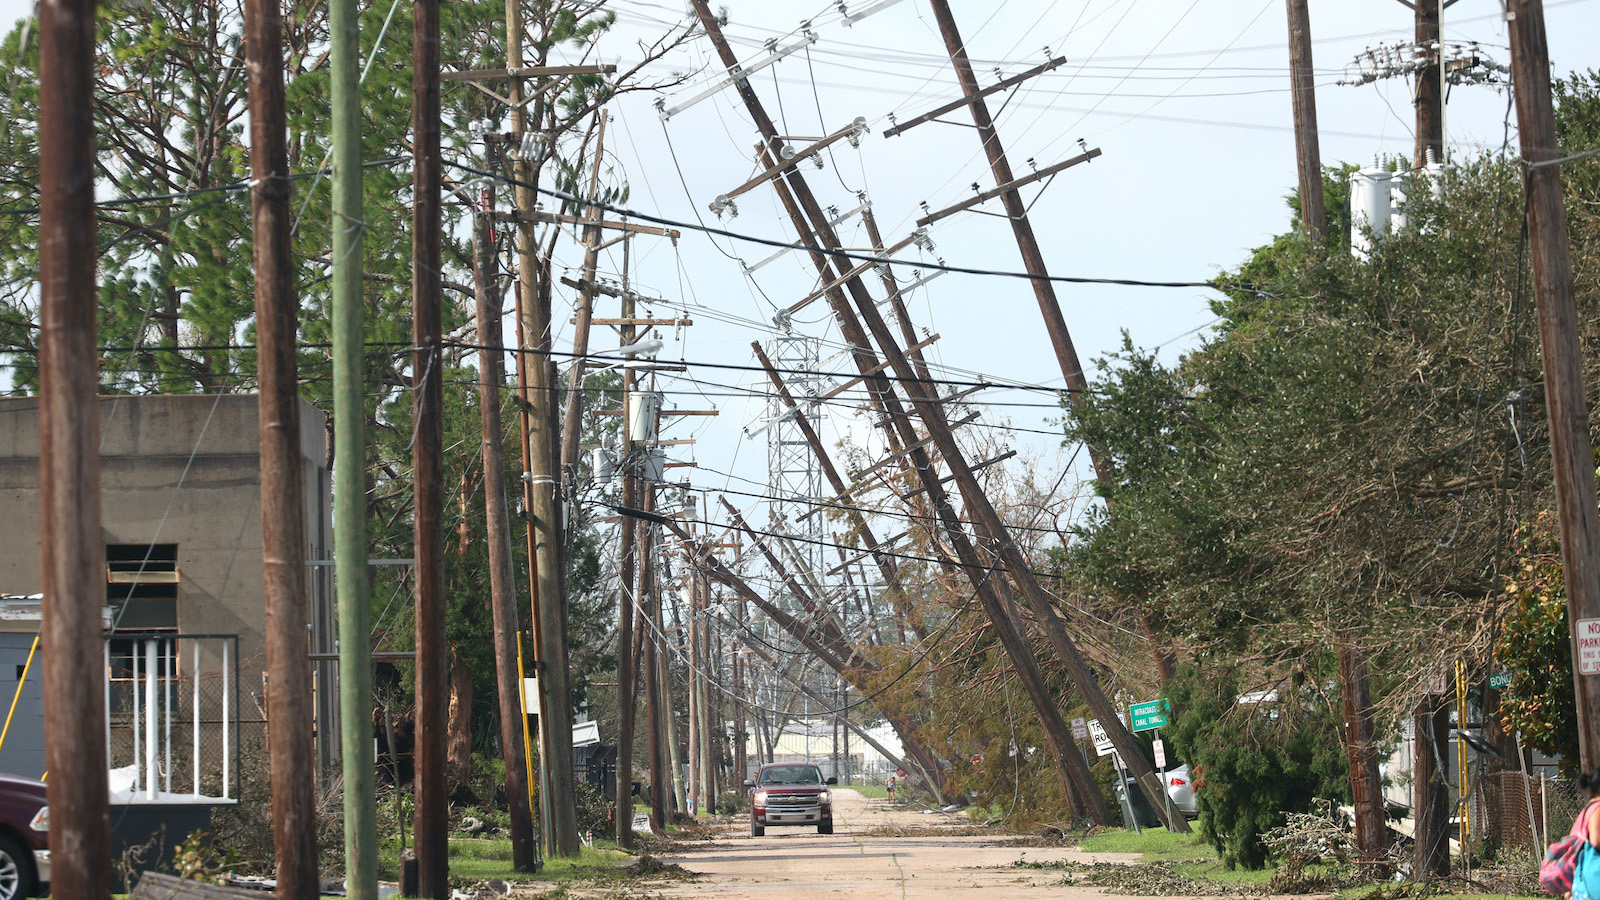 Downed power lines on a road in Houma, Louisiana.